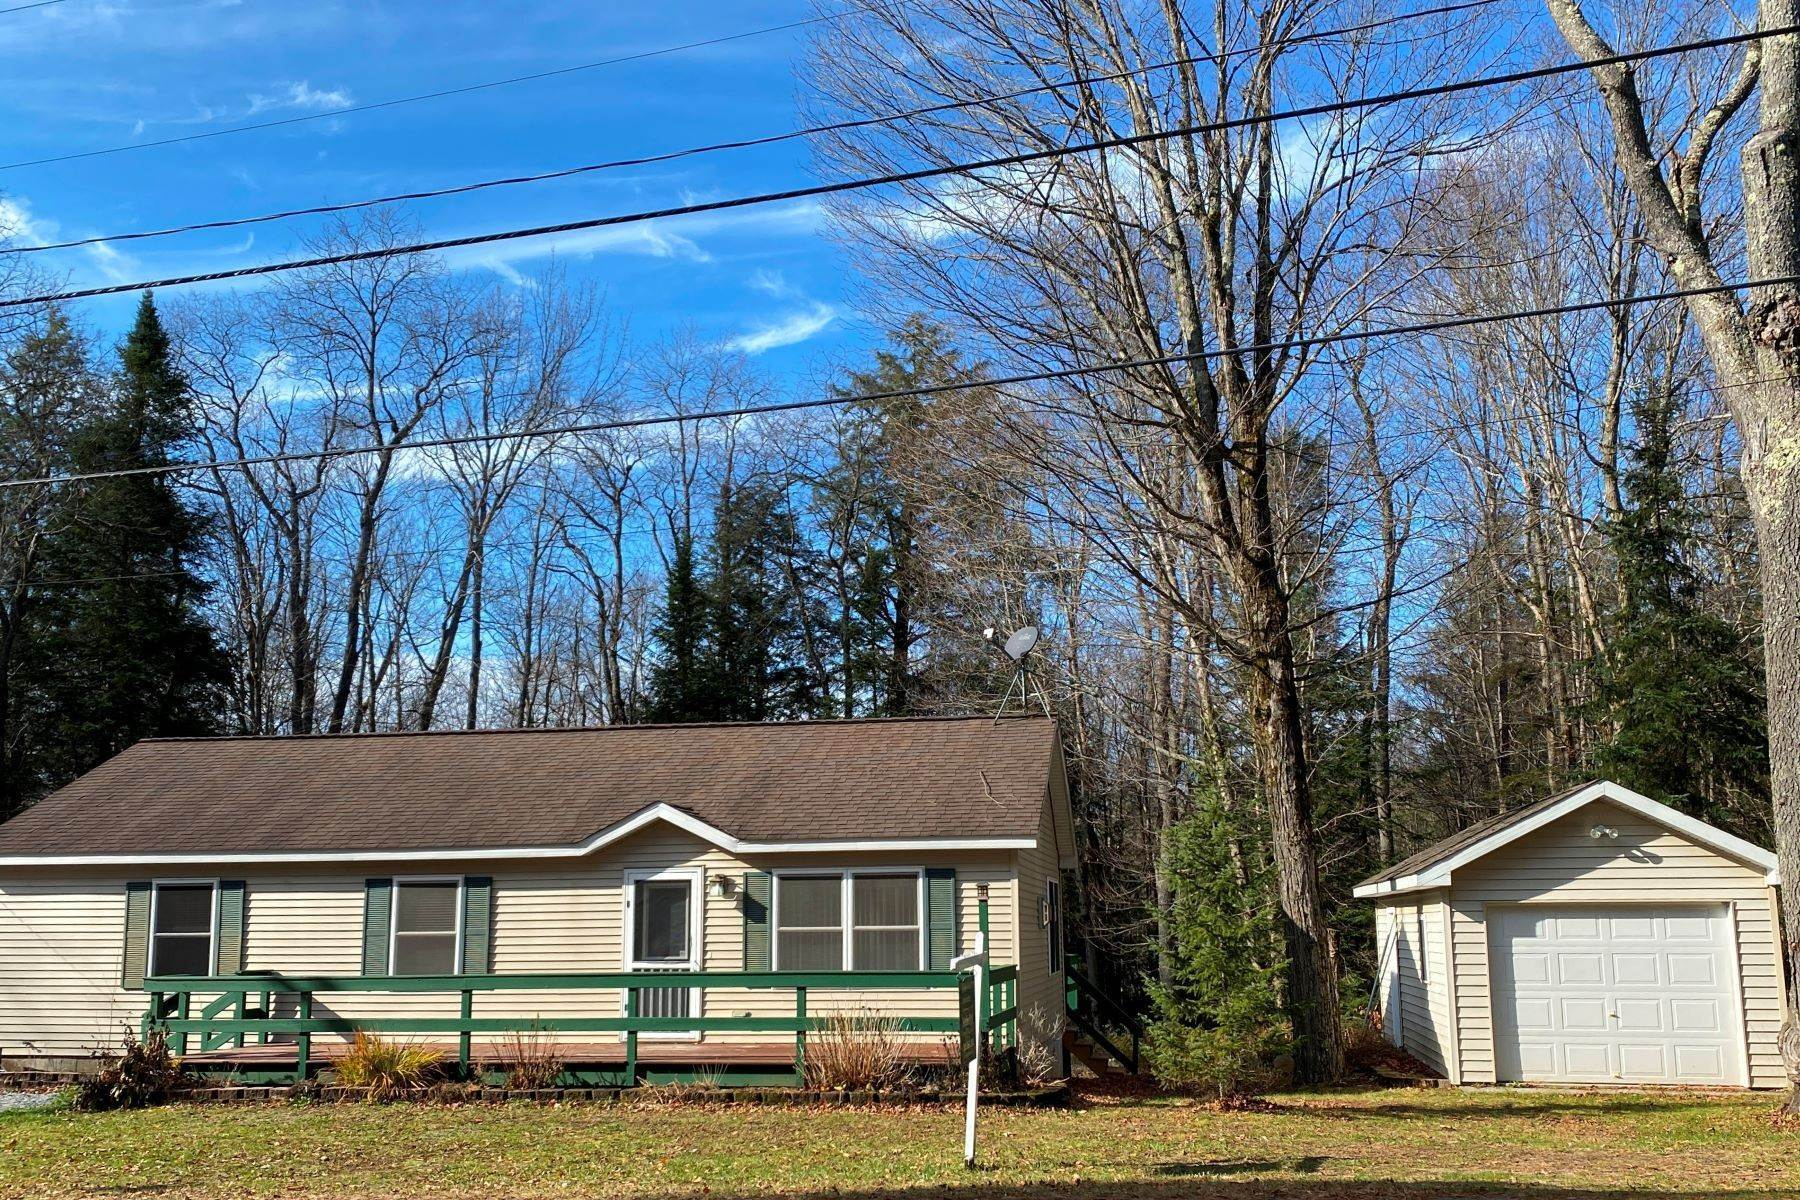 Single Family Homes for Sale at Ranch Home with 2 Garages 4018 Lakeview Road Forestport, New York 13472 United States